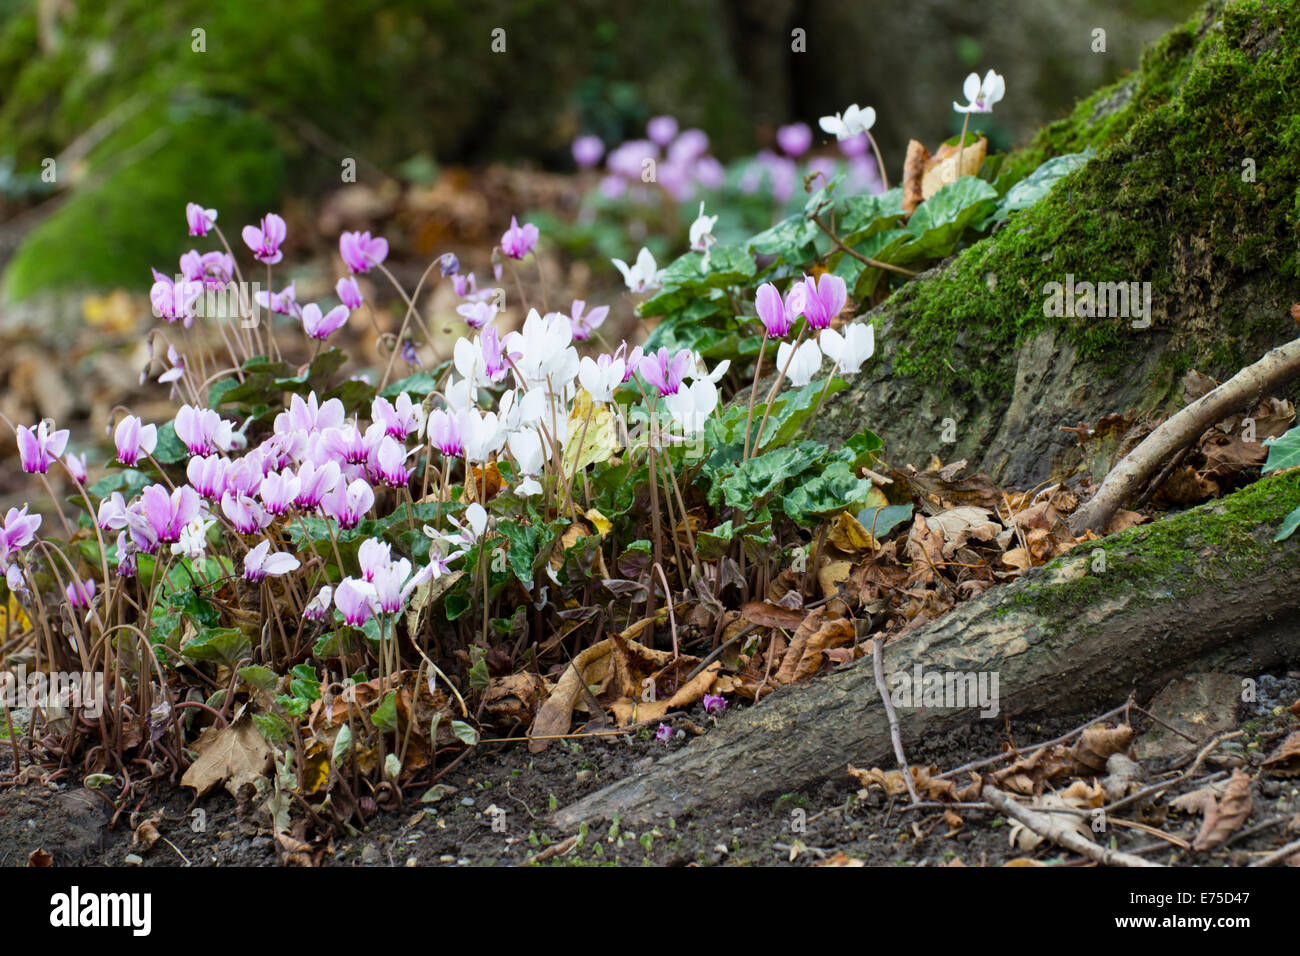 September Flowers Of The Pink And White Forms Of Sowbread Cyclamen